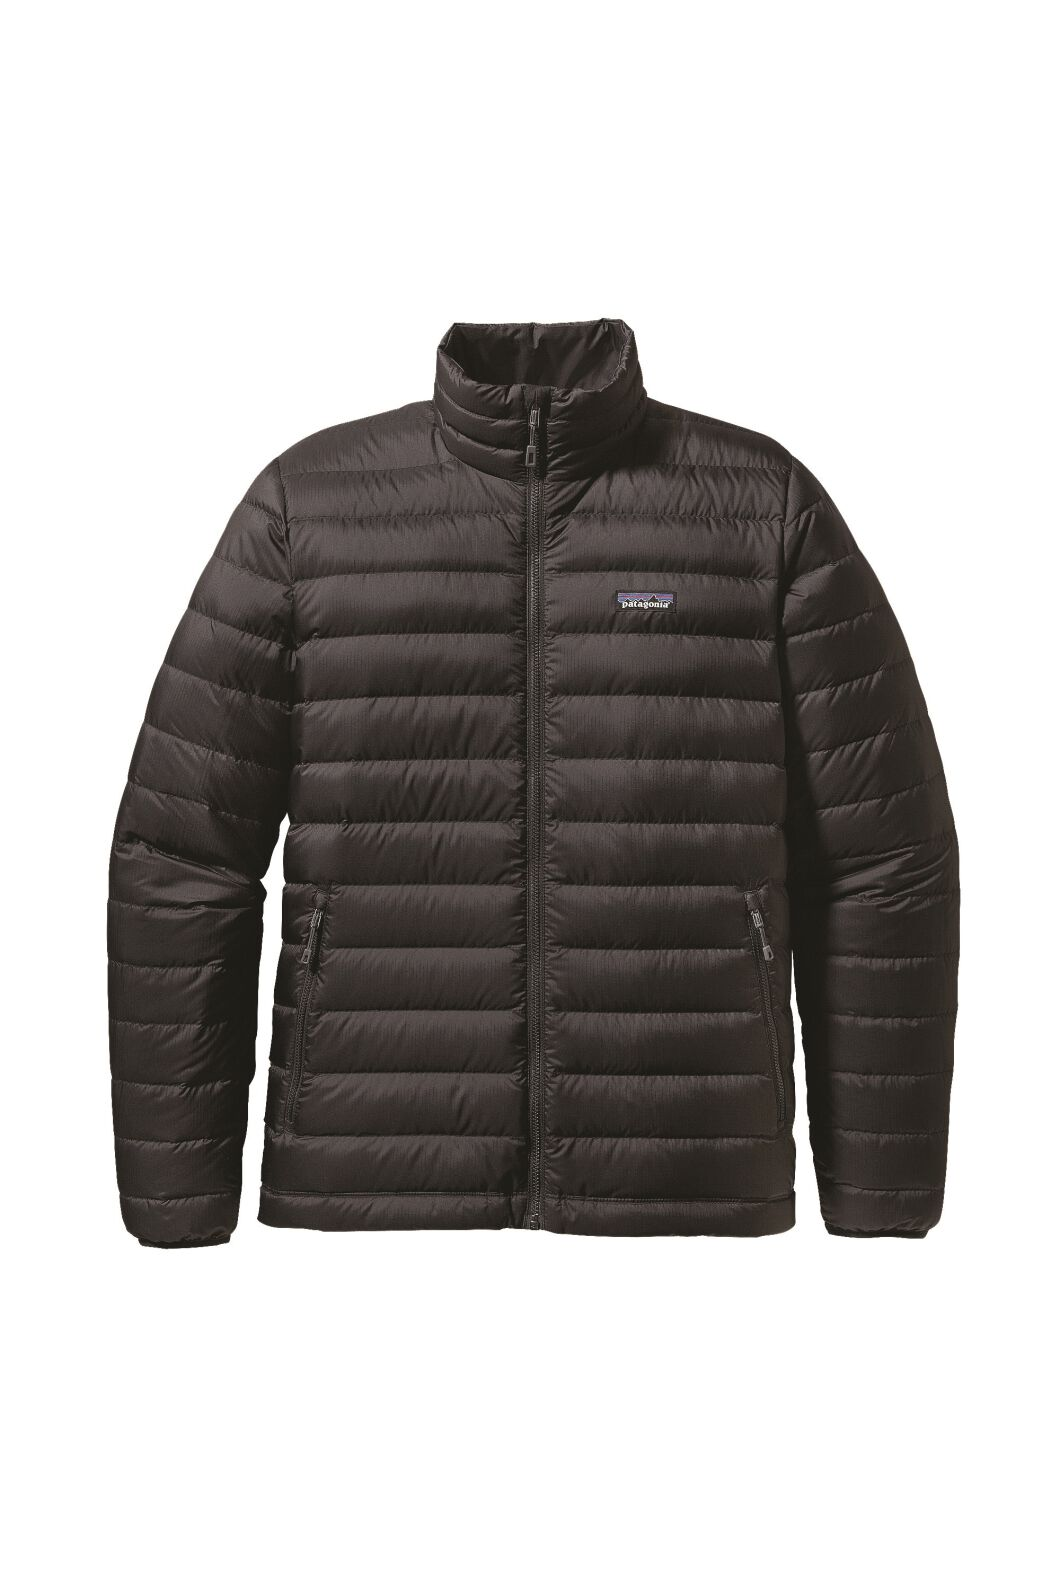 Patagonia Men's Down Sweater Jacket, Black, hi-res